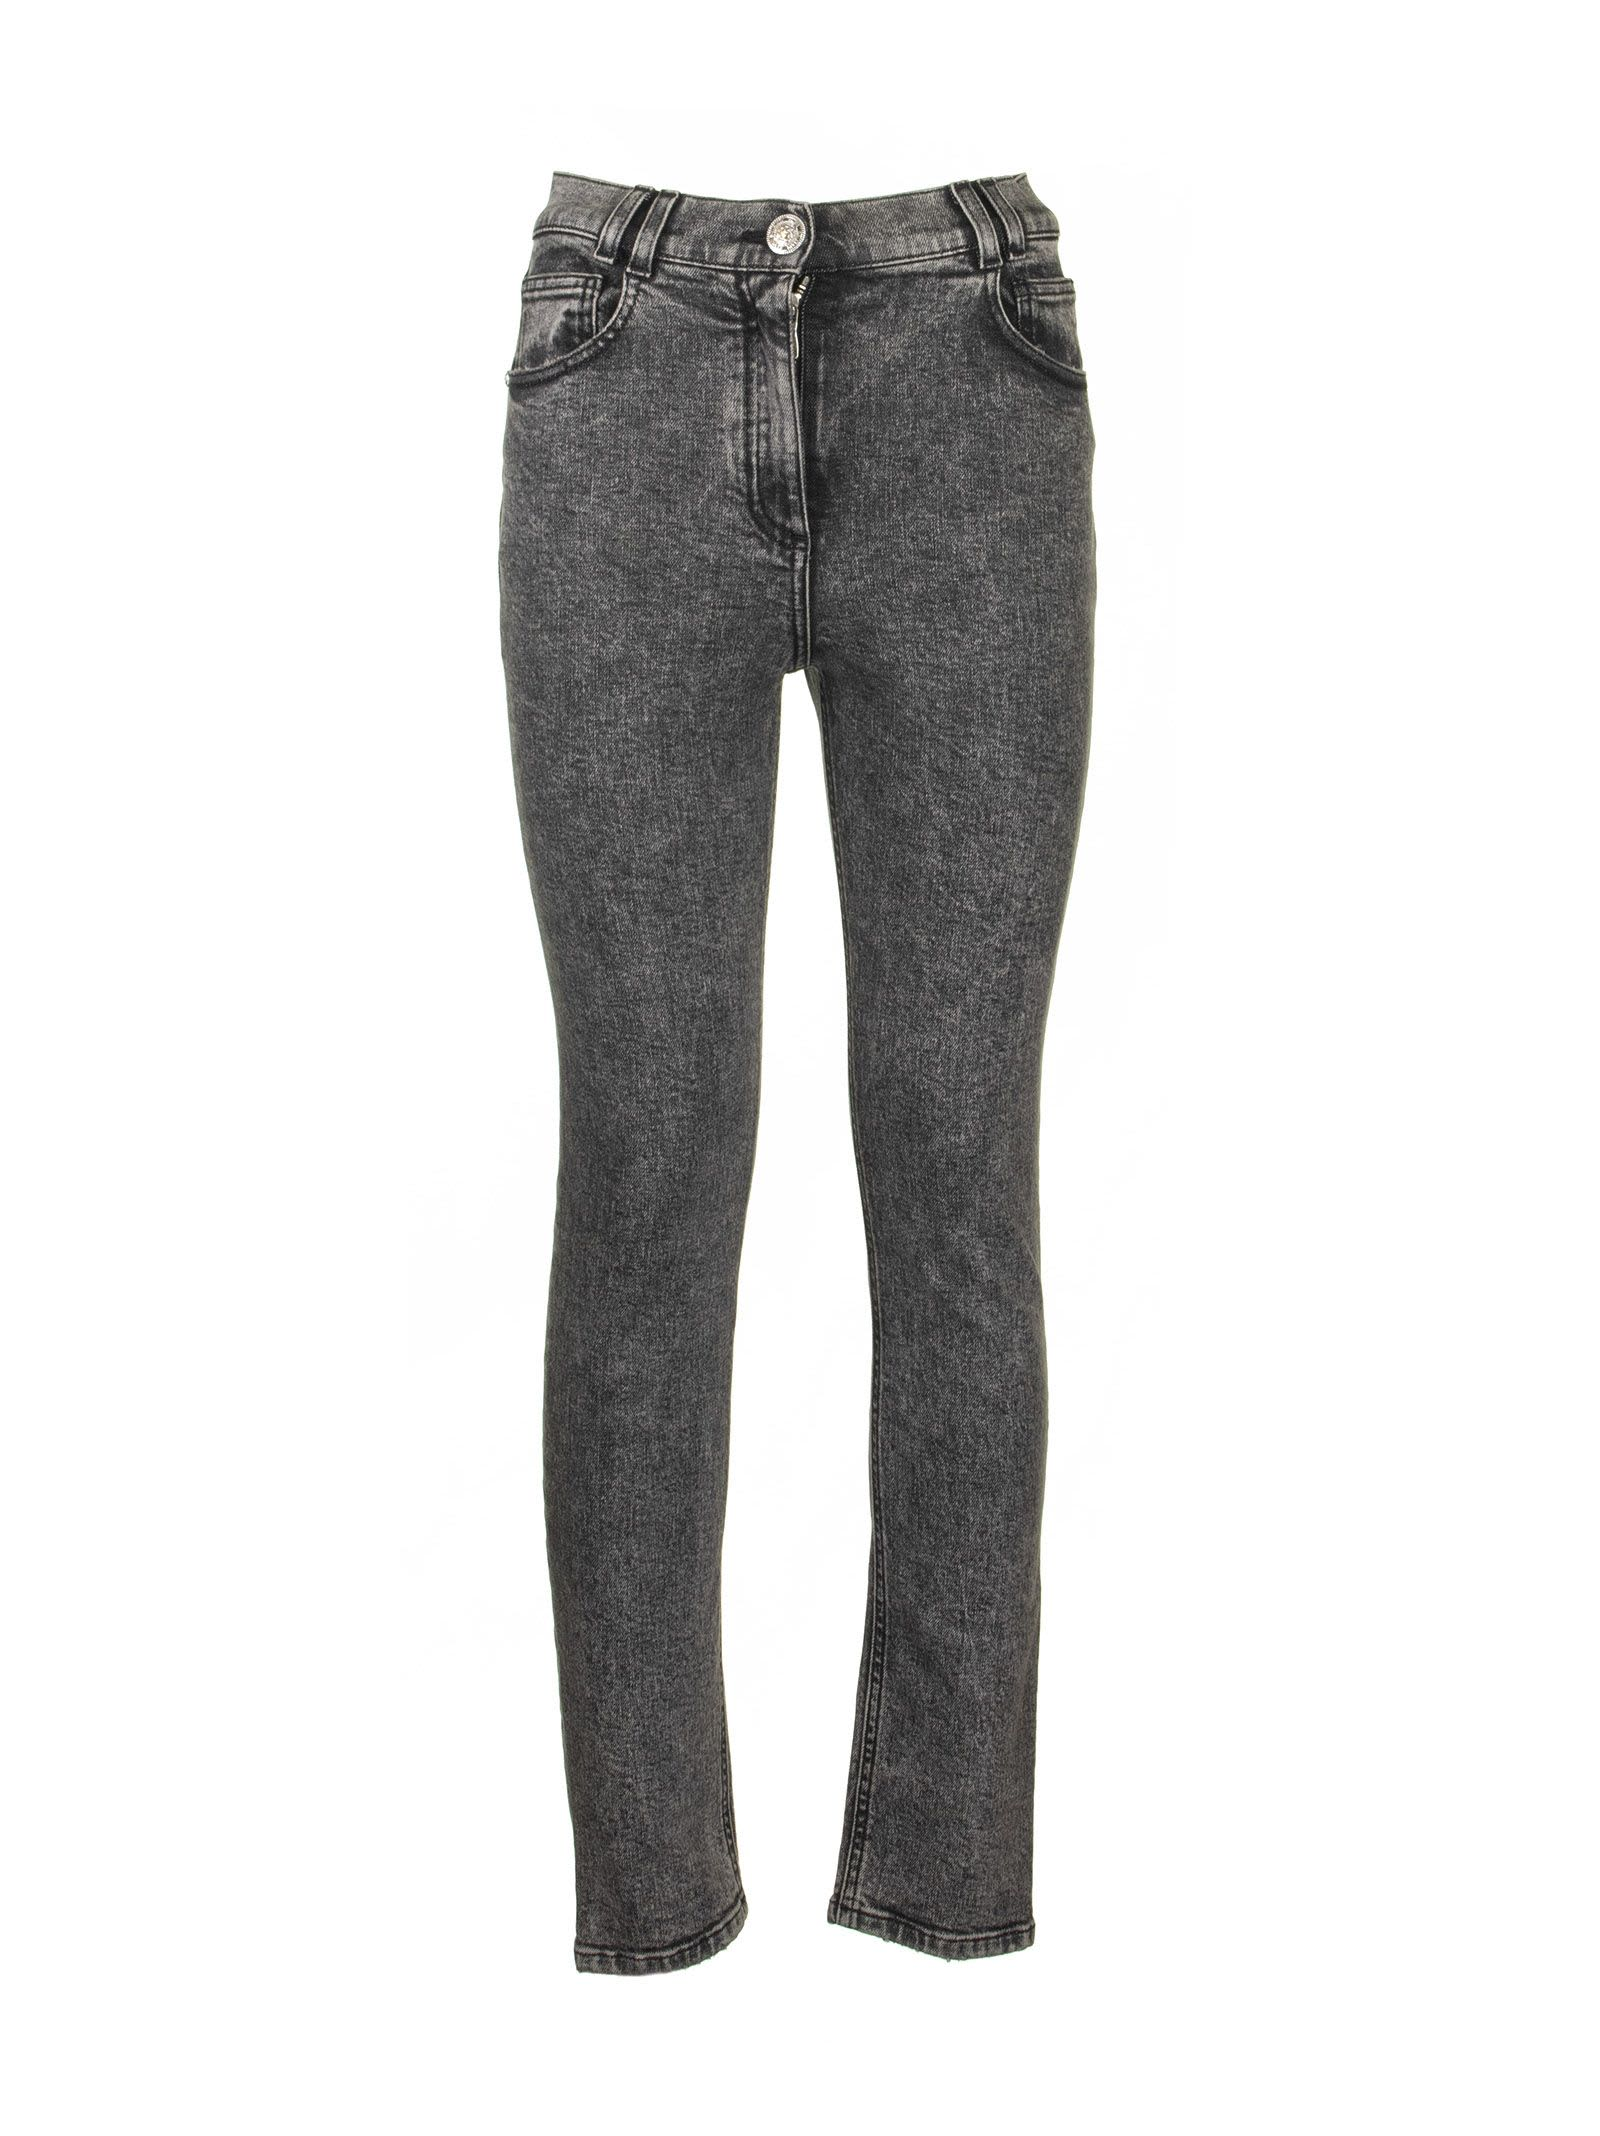 Balmain Black Skinny Jeans Denim Cotton